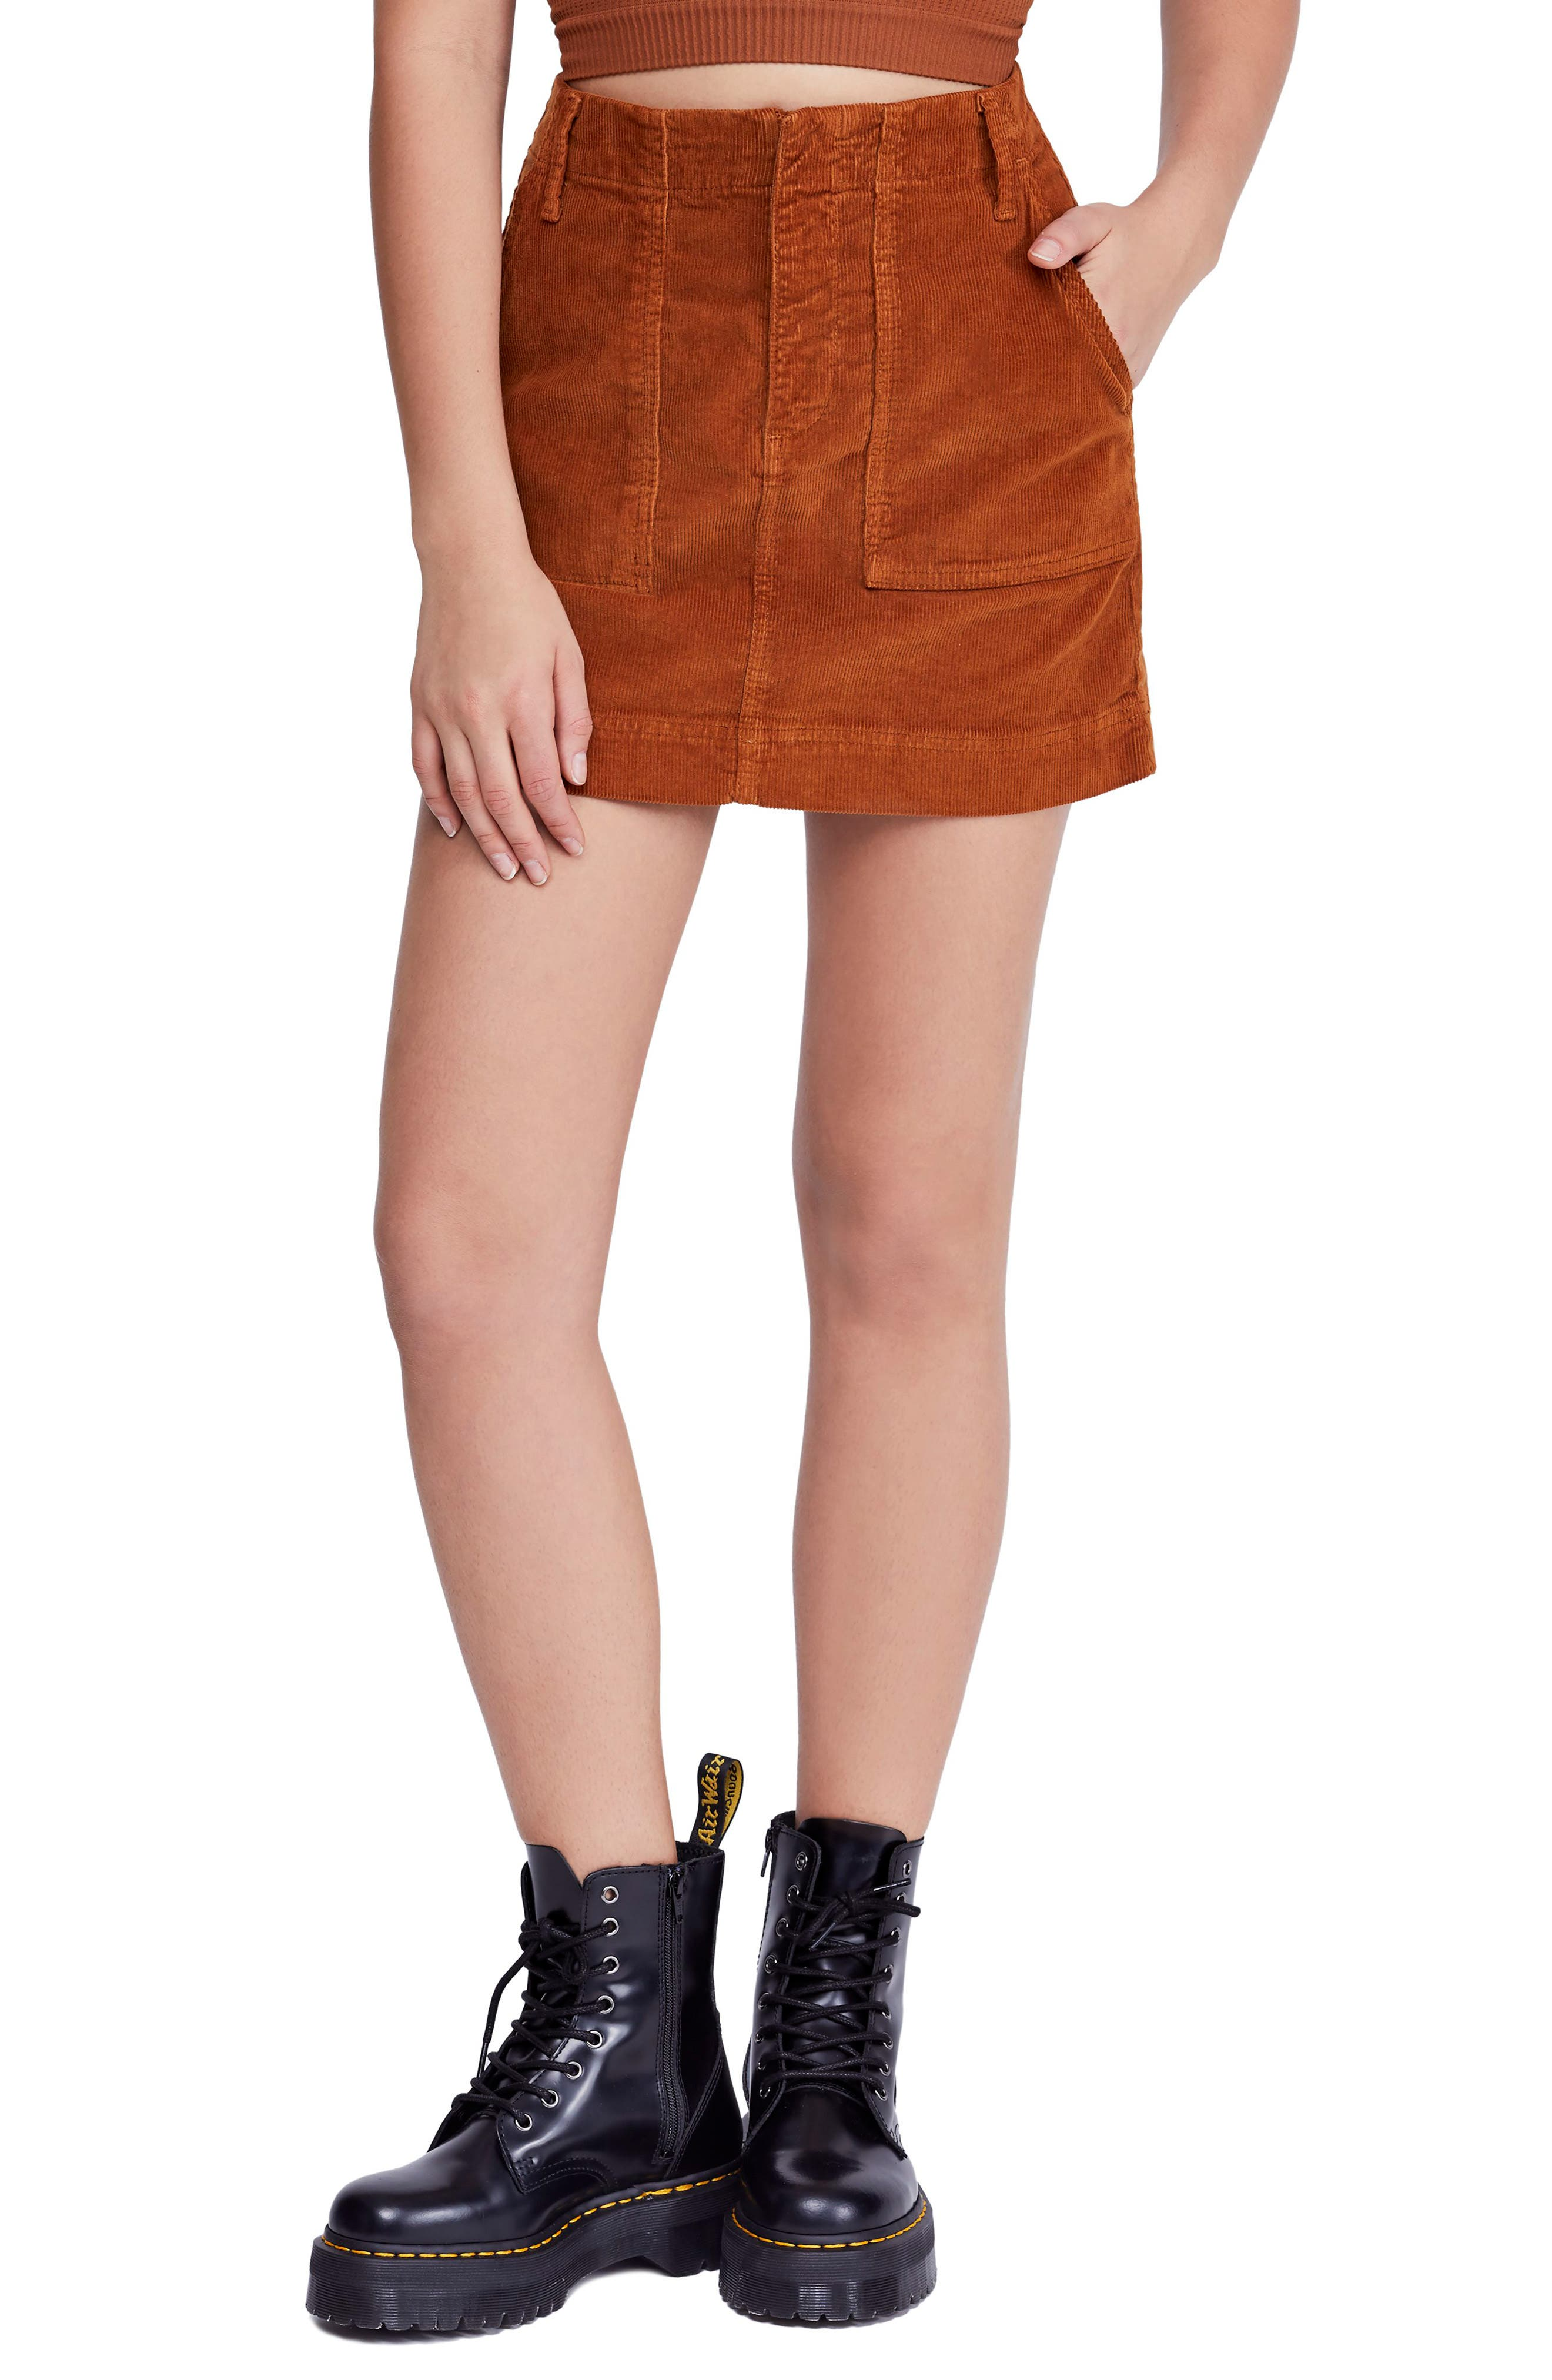 Bdg Urban Outfitters Corduroy Utility Skirt, Brown